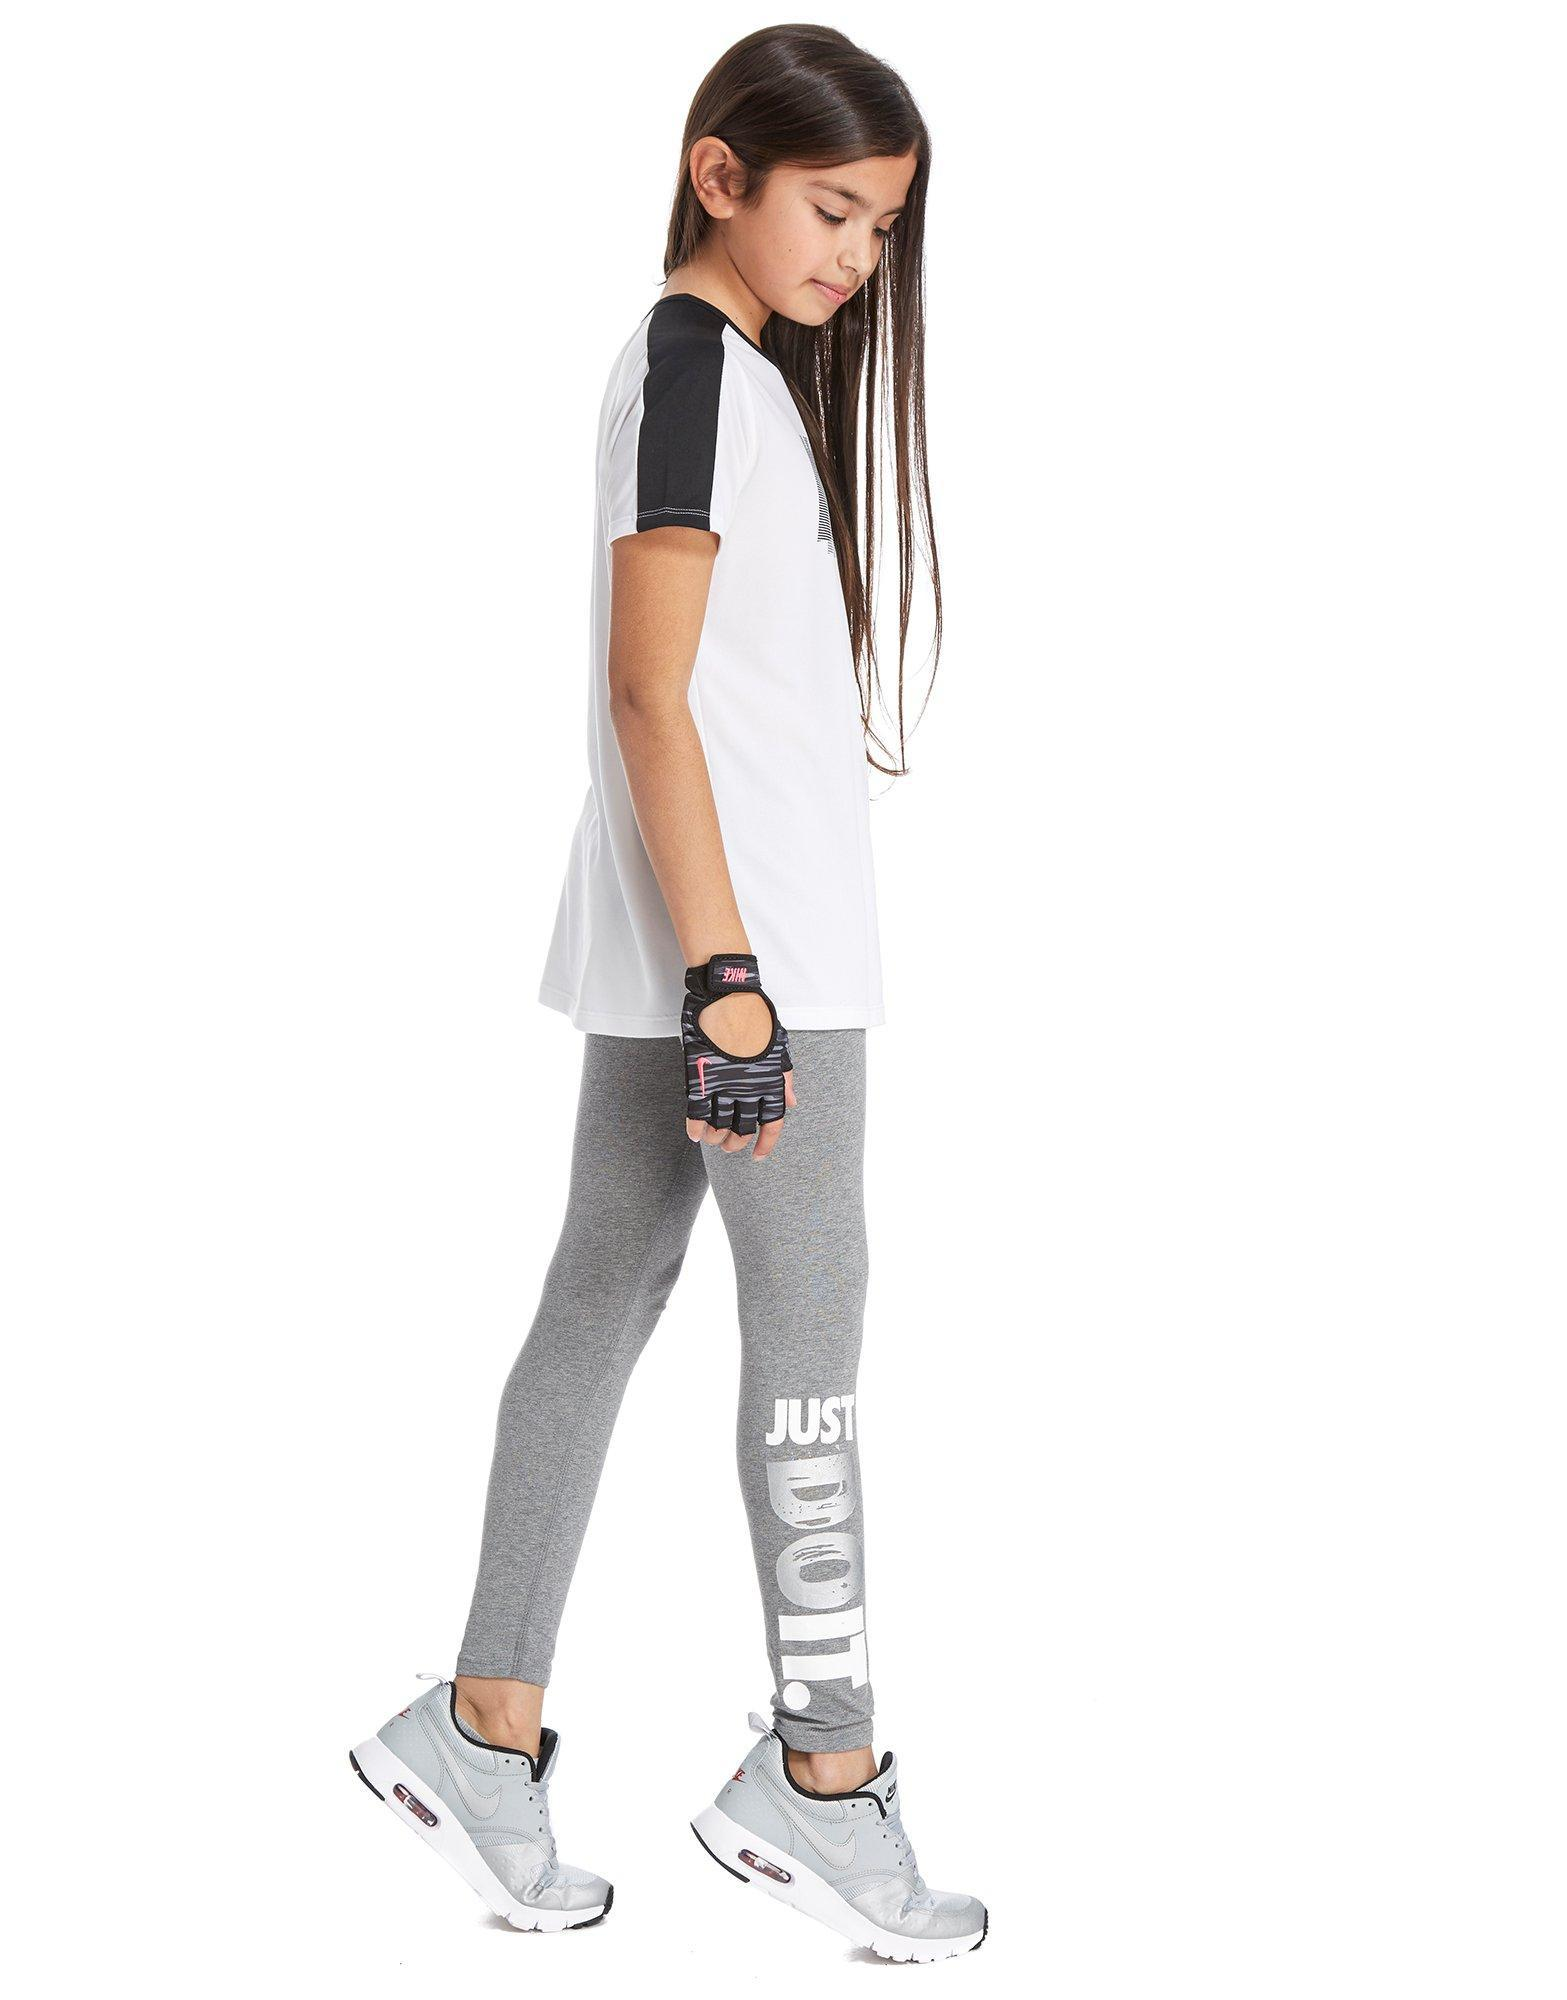 Nike Girls' Just Do It Leggings Junior in Gray